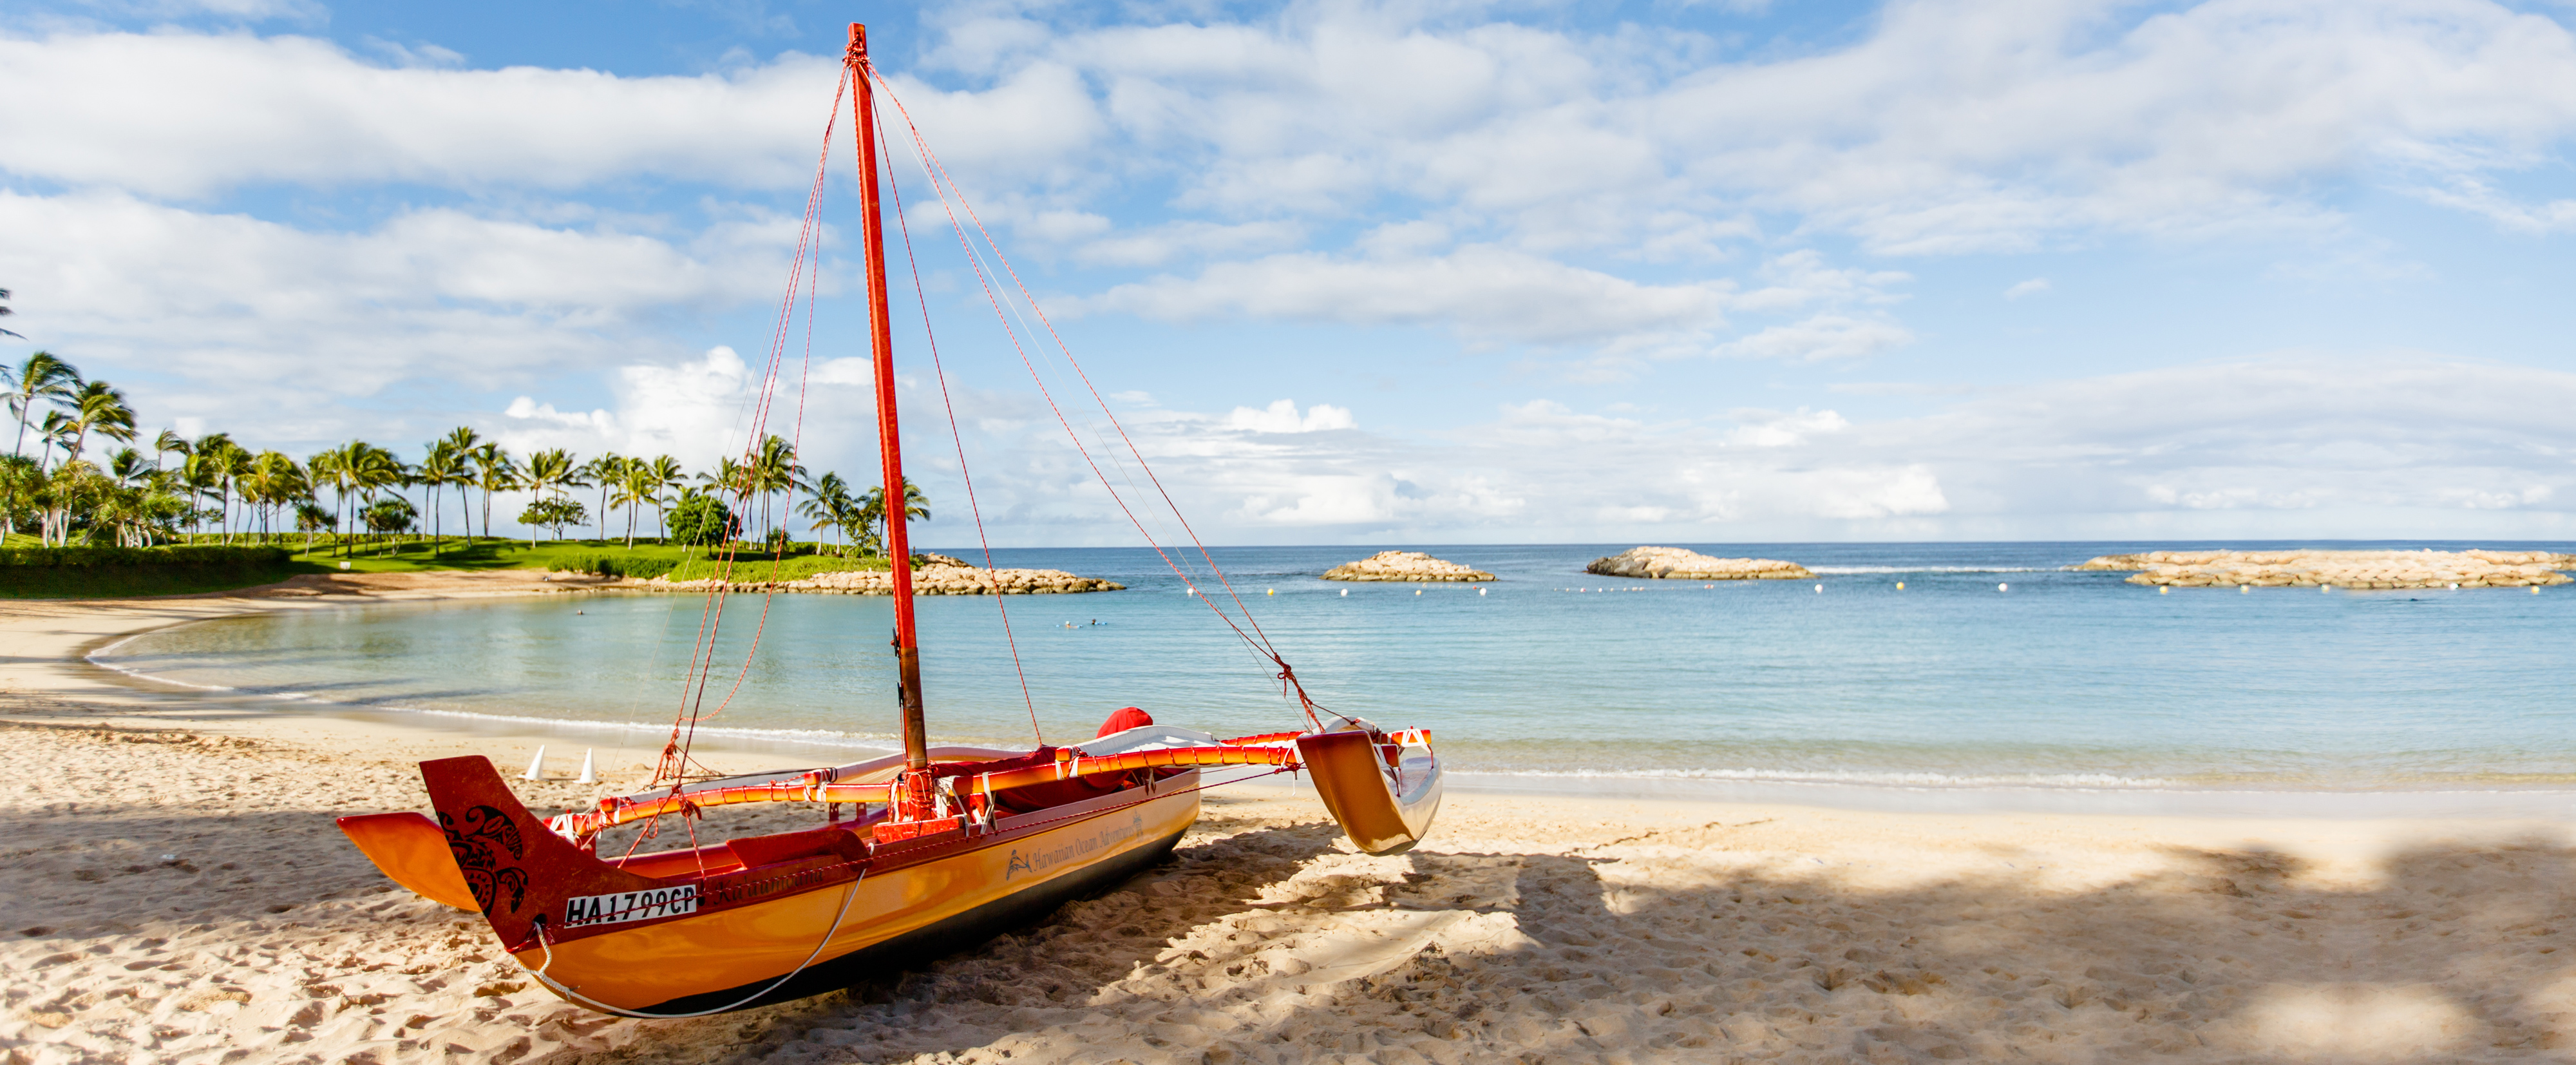 A Hawaiian Ocean Adventures sailing canoe on a sandy tropical beach, near the water's edge